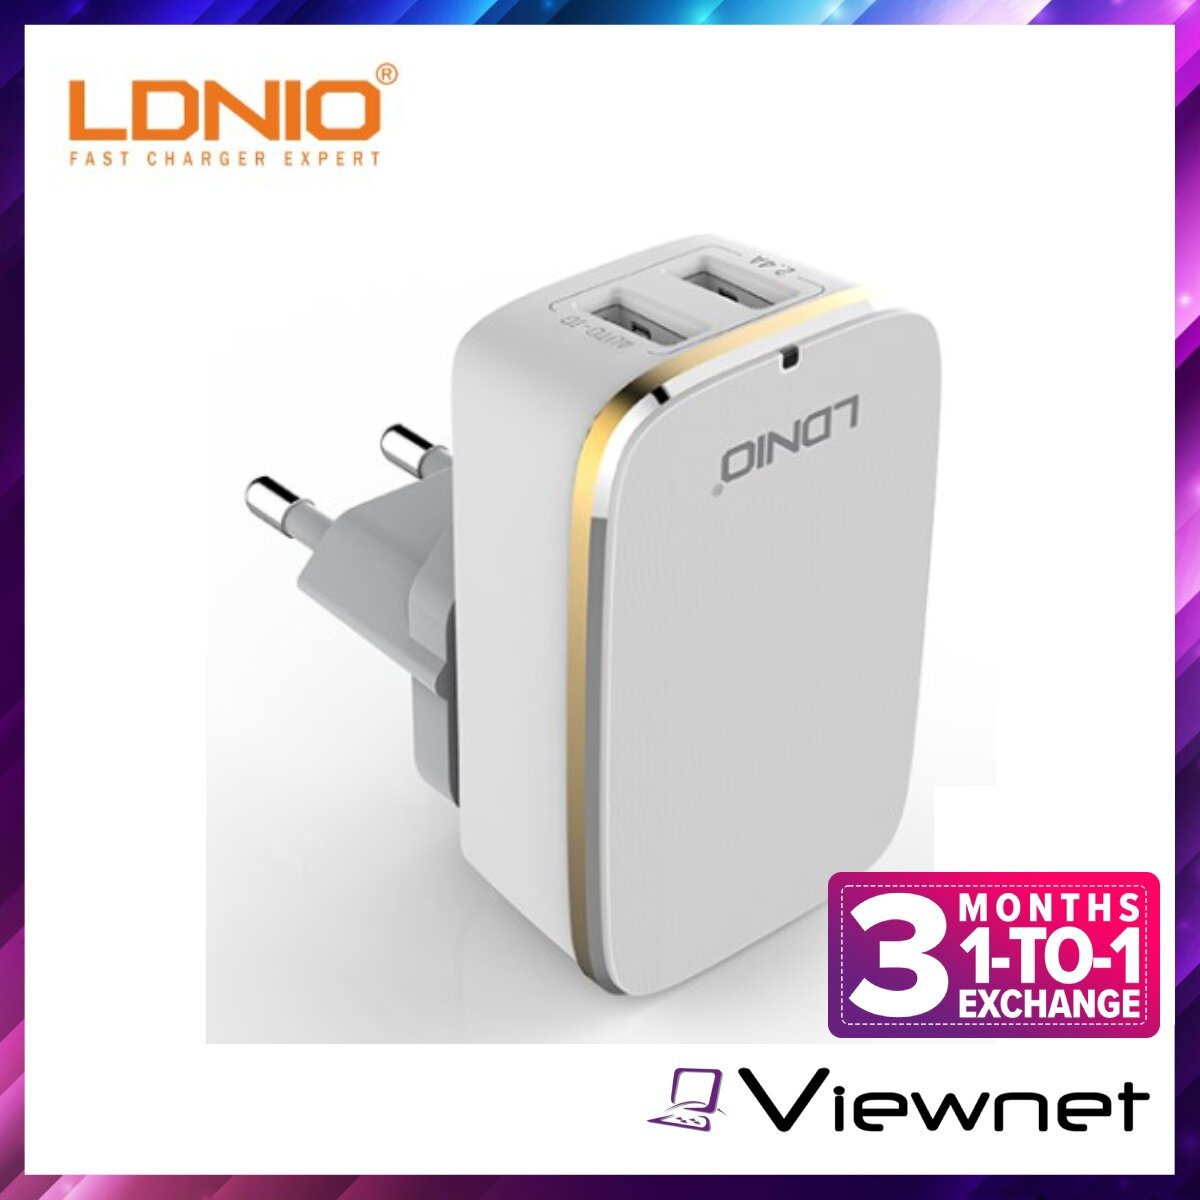 Ldnio 2 USB Port 2.4A Charger with Micro USB Cable (A2204), 2 x USB Output, 2.4A Auto Max 12W, UK 3-Pin Plug, Input AC100-240V 50-60Hz Max 500mA